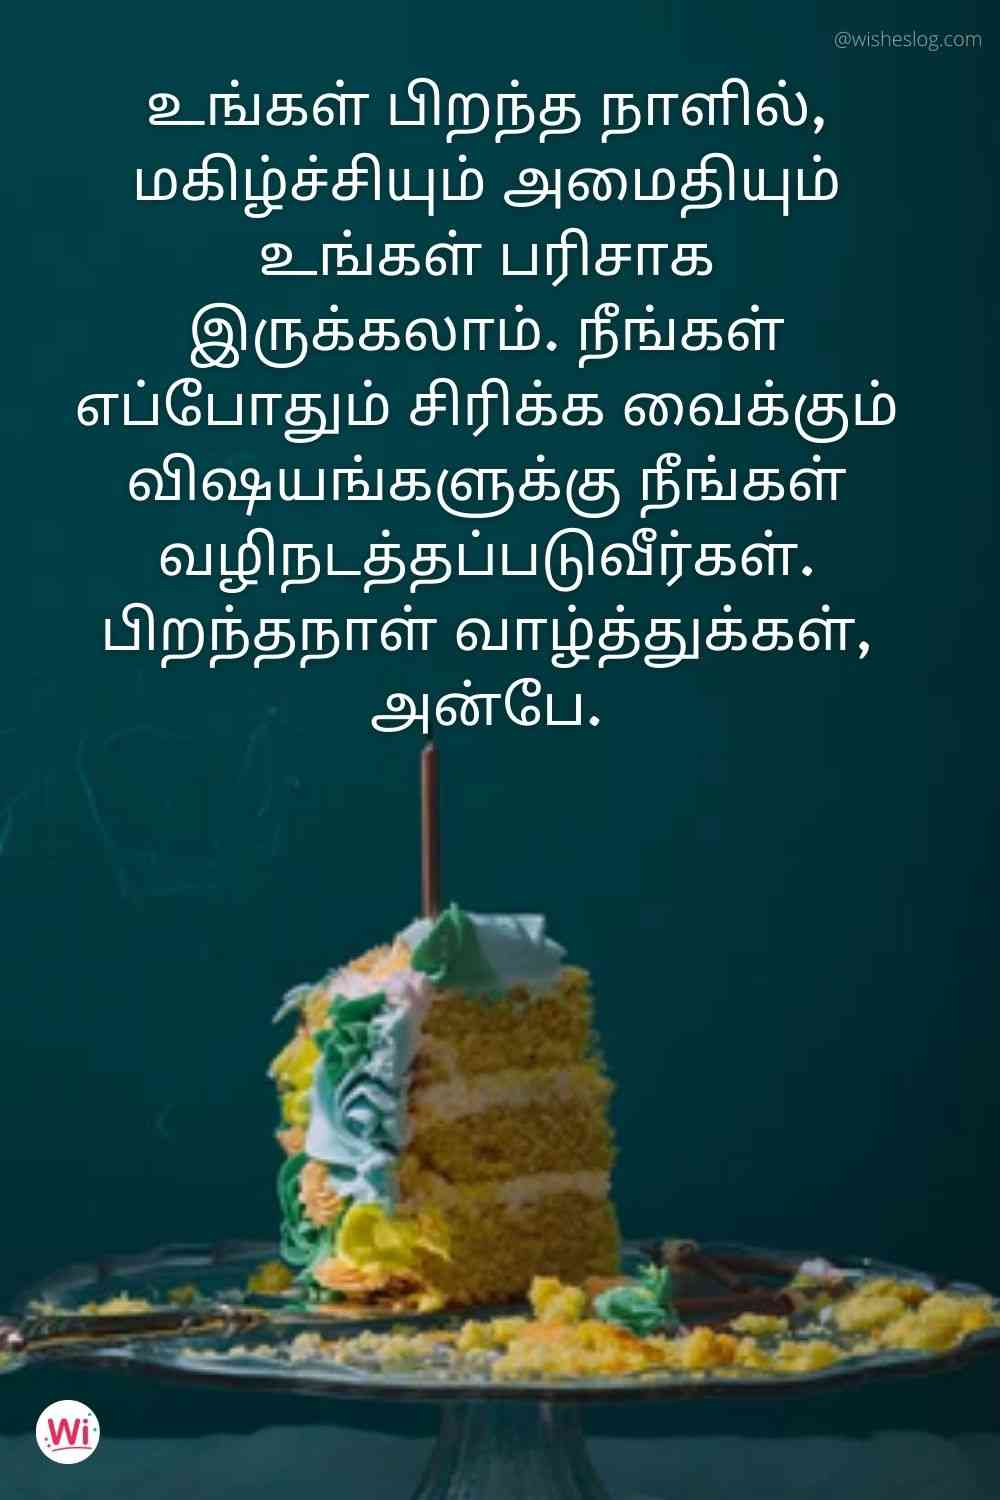 happy birthday thambi tamil